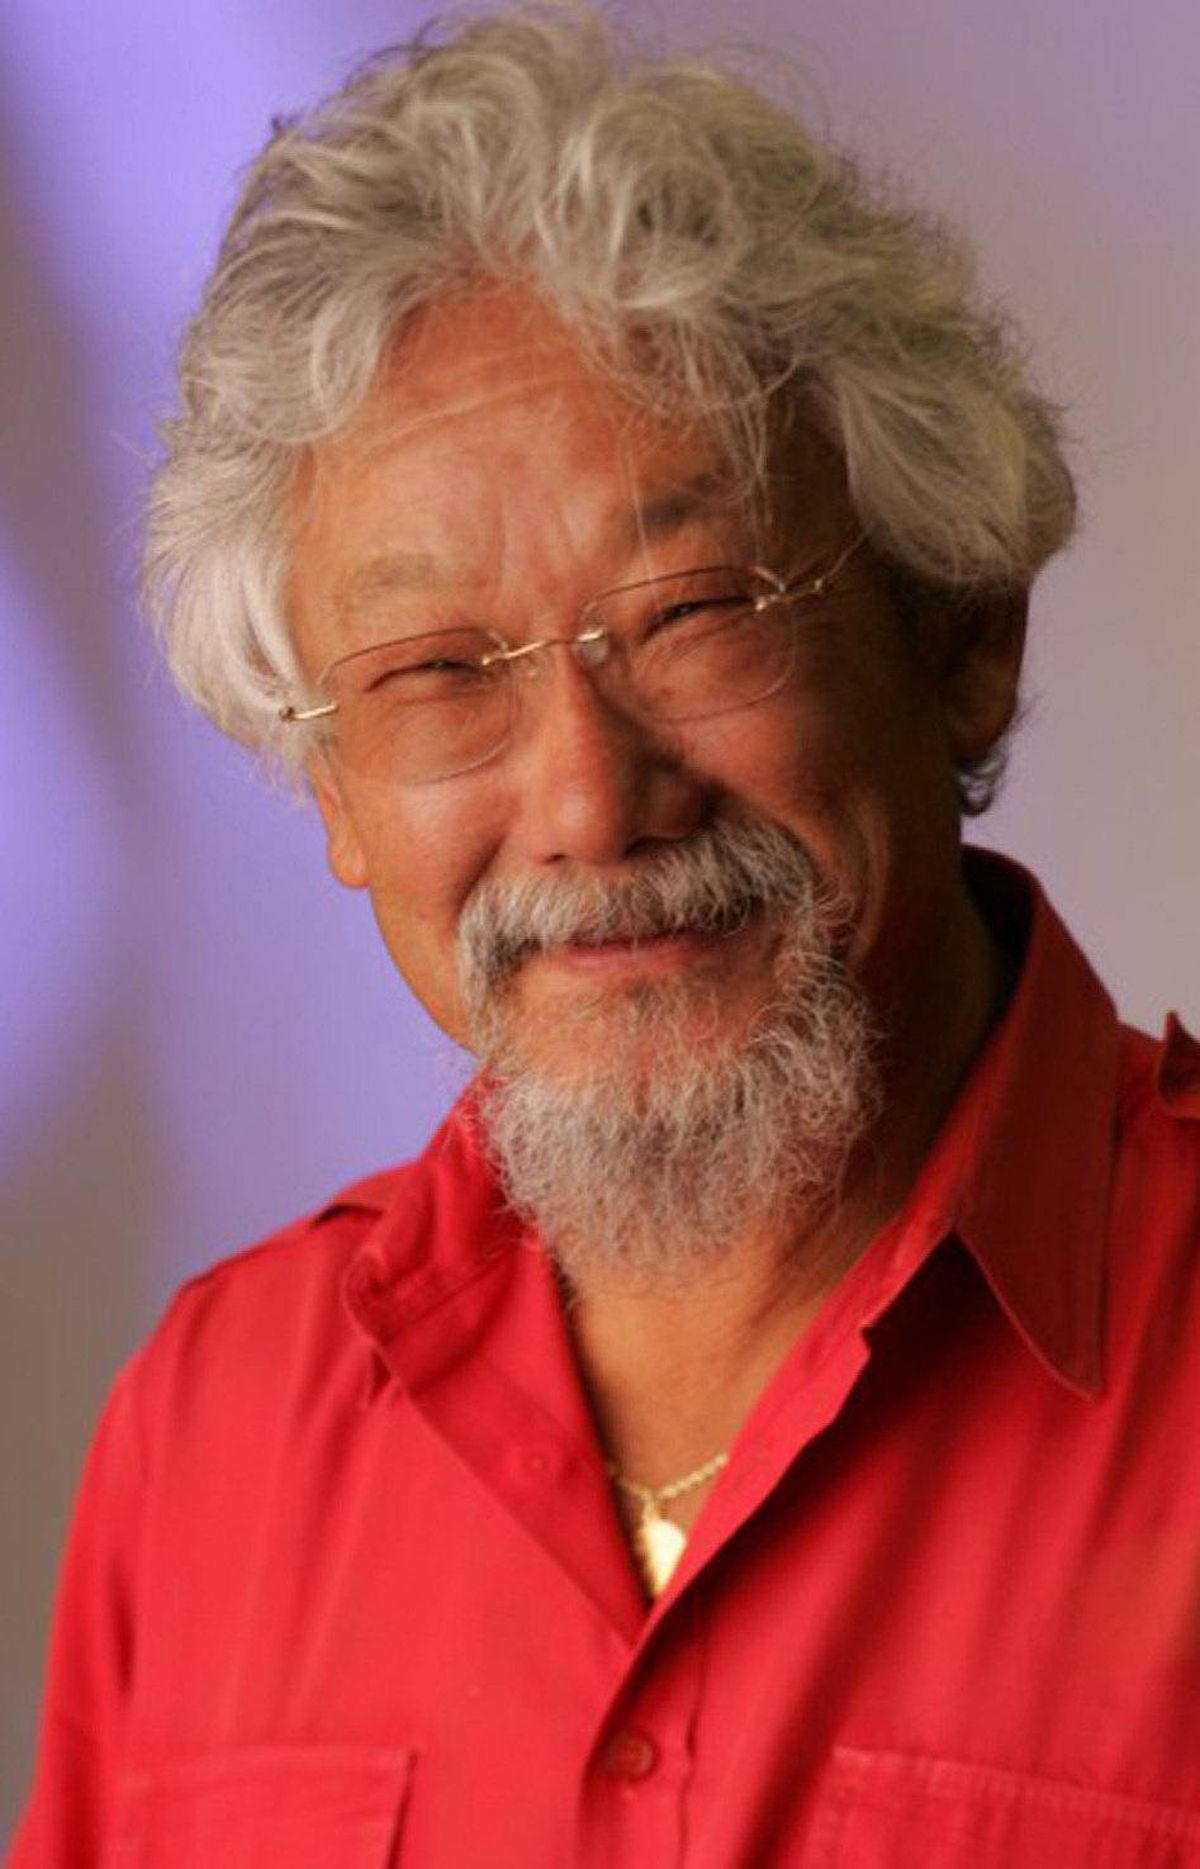 PROFILE Force of Nature: The David Suzuki Movie CBC, 8 p.m. Shown in limited theatrical release last year, this documentary recounts the life and times of David Suzuki in moving fashion. Directed by Surla Gunnarsson, the film showcases the Nature of Things host's lifelong commitment to environmentalism, but also follows Suzuki travelling to important locations in order to tell his life story. The program trails Suzuki to a memorial ceremony in Hiroshima and to the site of a former internment camp like the one his family and other Japanese-Canadians were shipped to during the Second World War. Suzuki also returns to his former hometown of Leamington, Ontario, where he developed his love of fishing and nature. Long may he run.